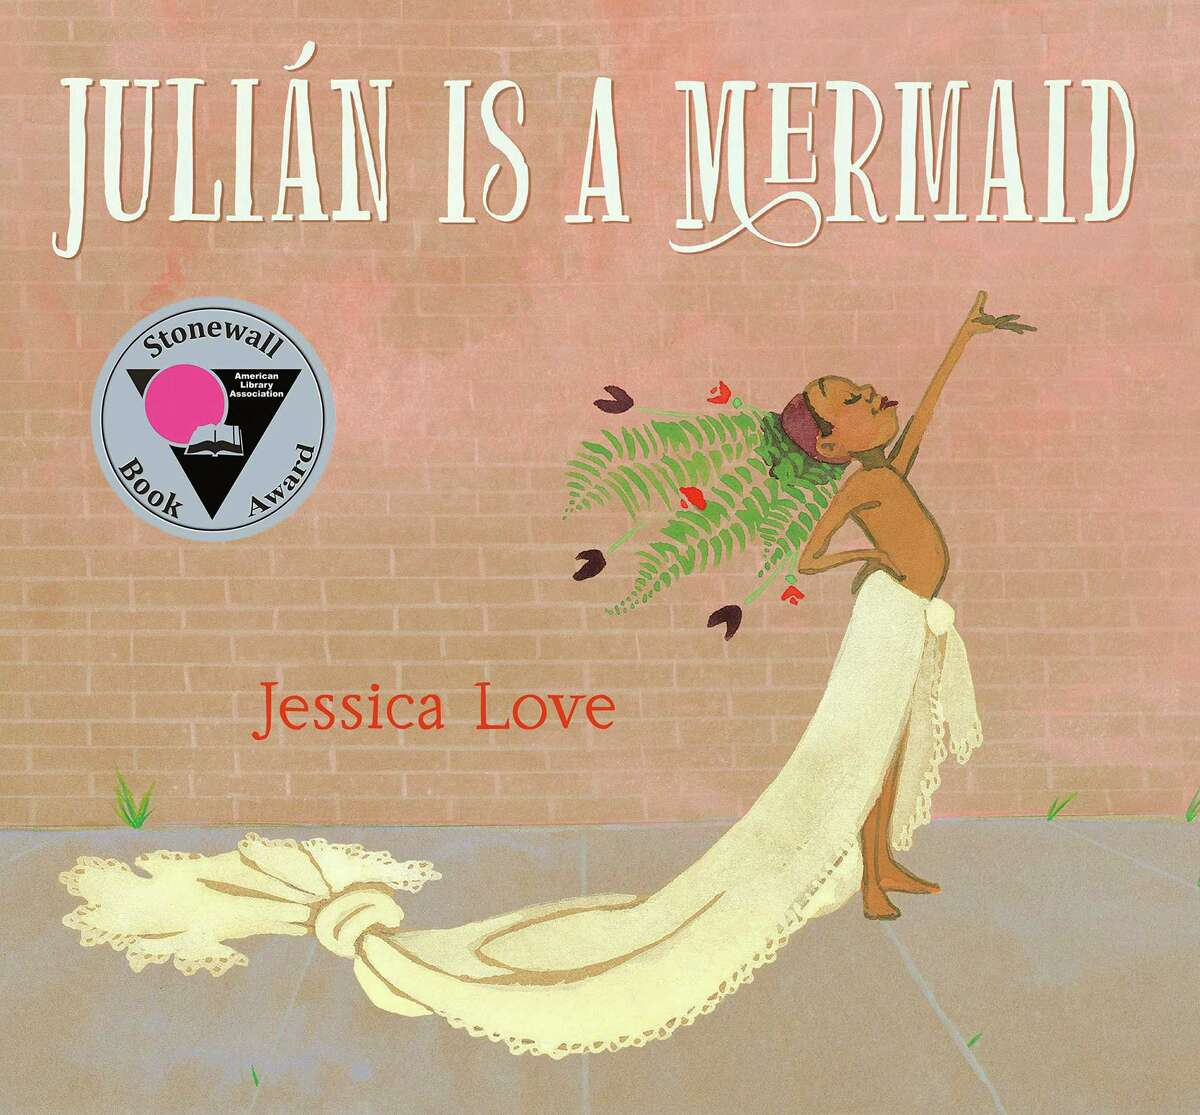 Fairfield Library's Take Your Mermaid to the Library Day will feature a visit by author/illustrator Jessica Love, who will share her award-winning book